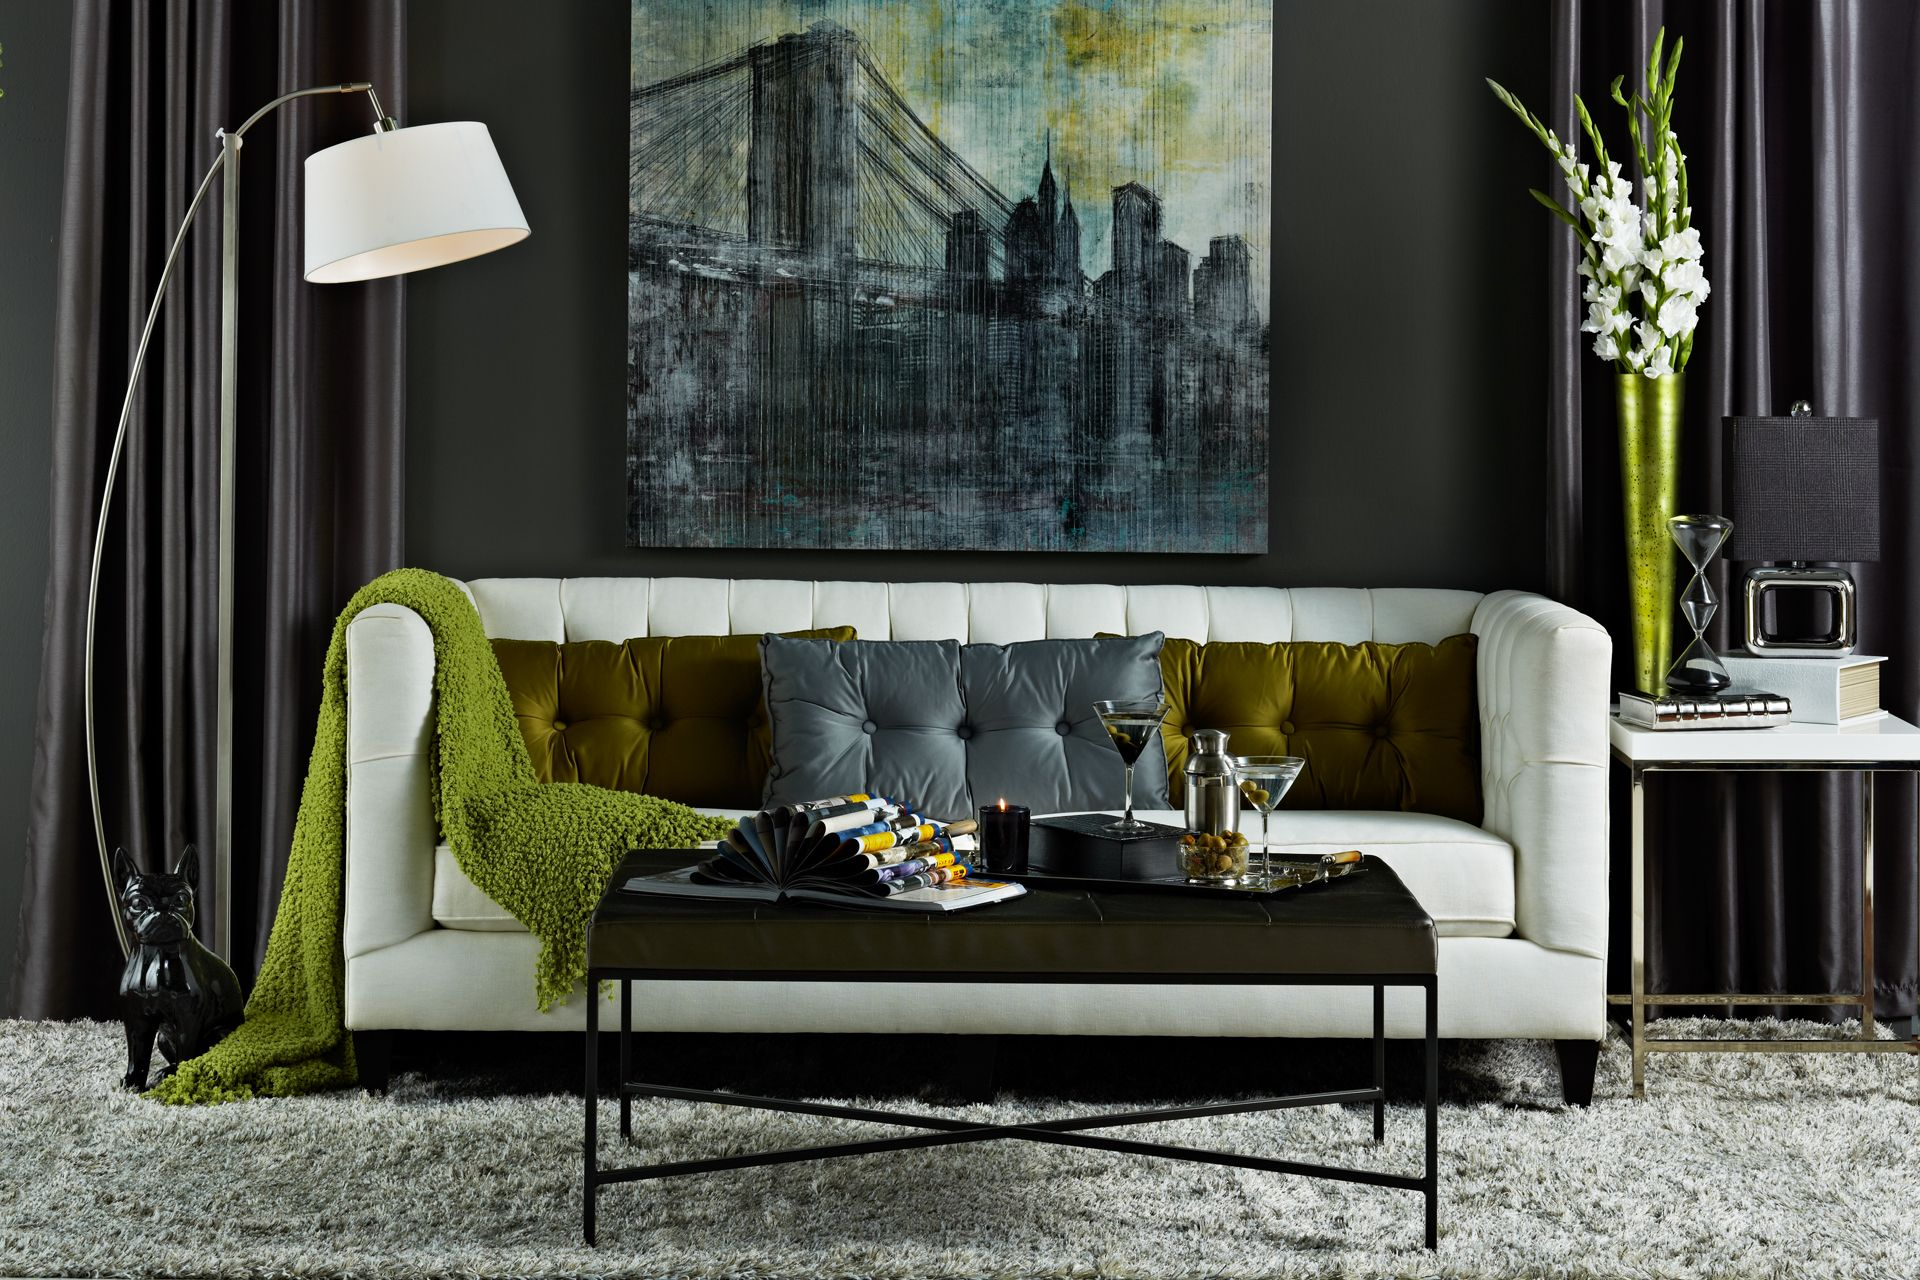 Do You Love This Modern Metro Styled Room? Find Out What